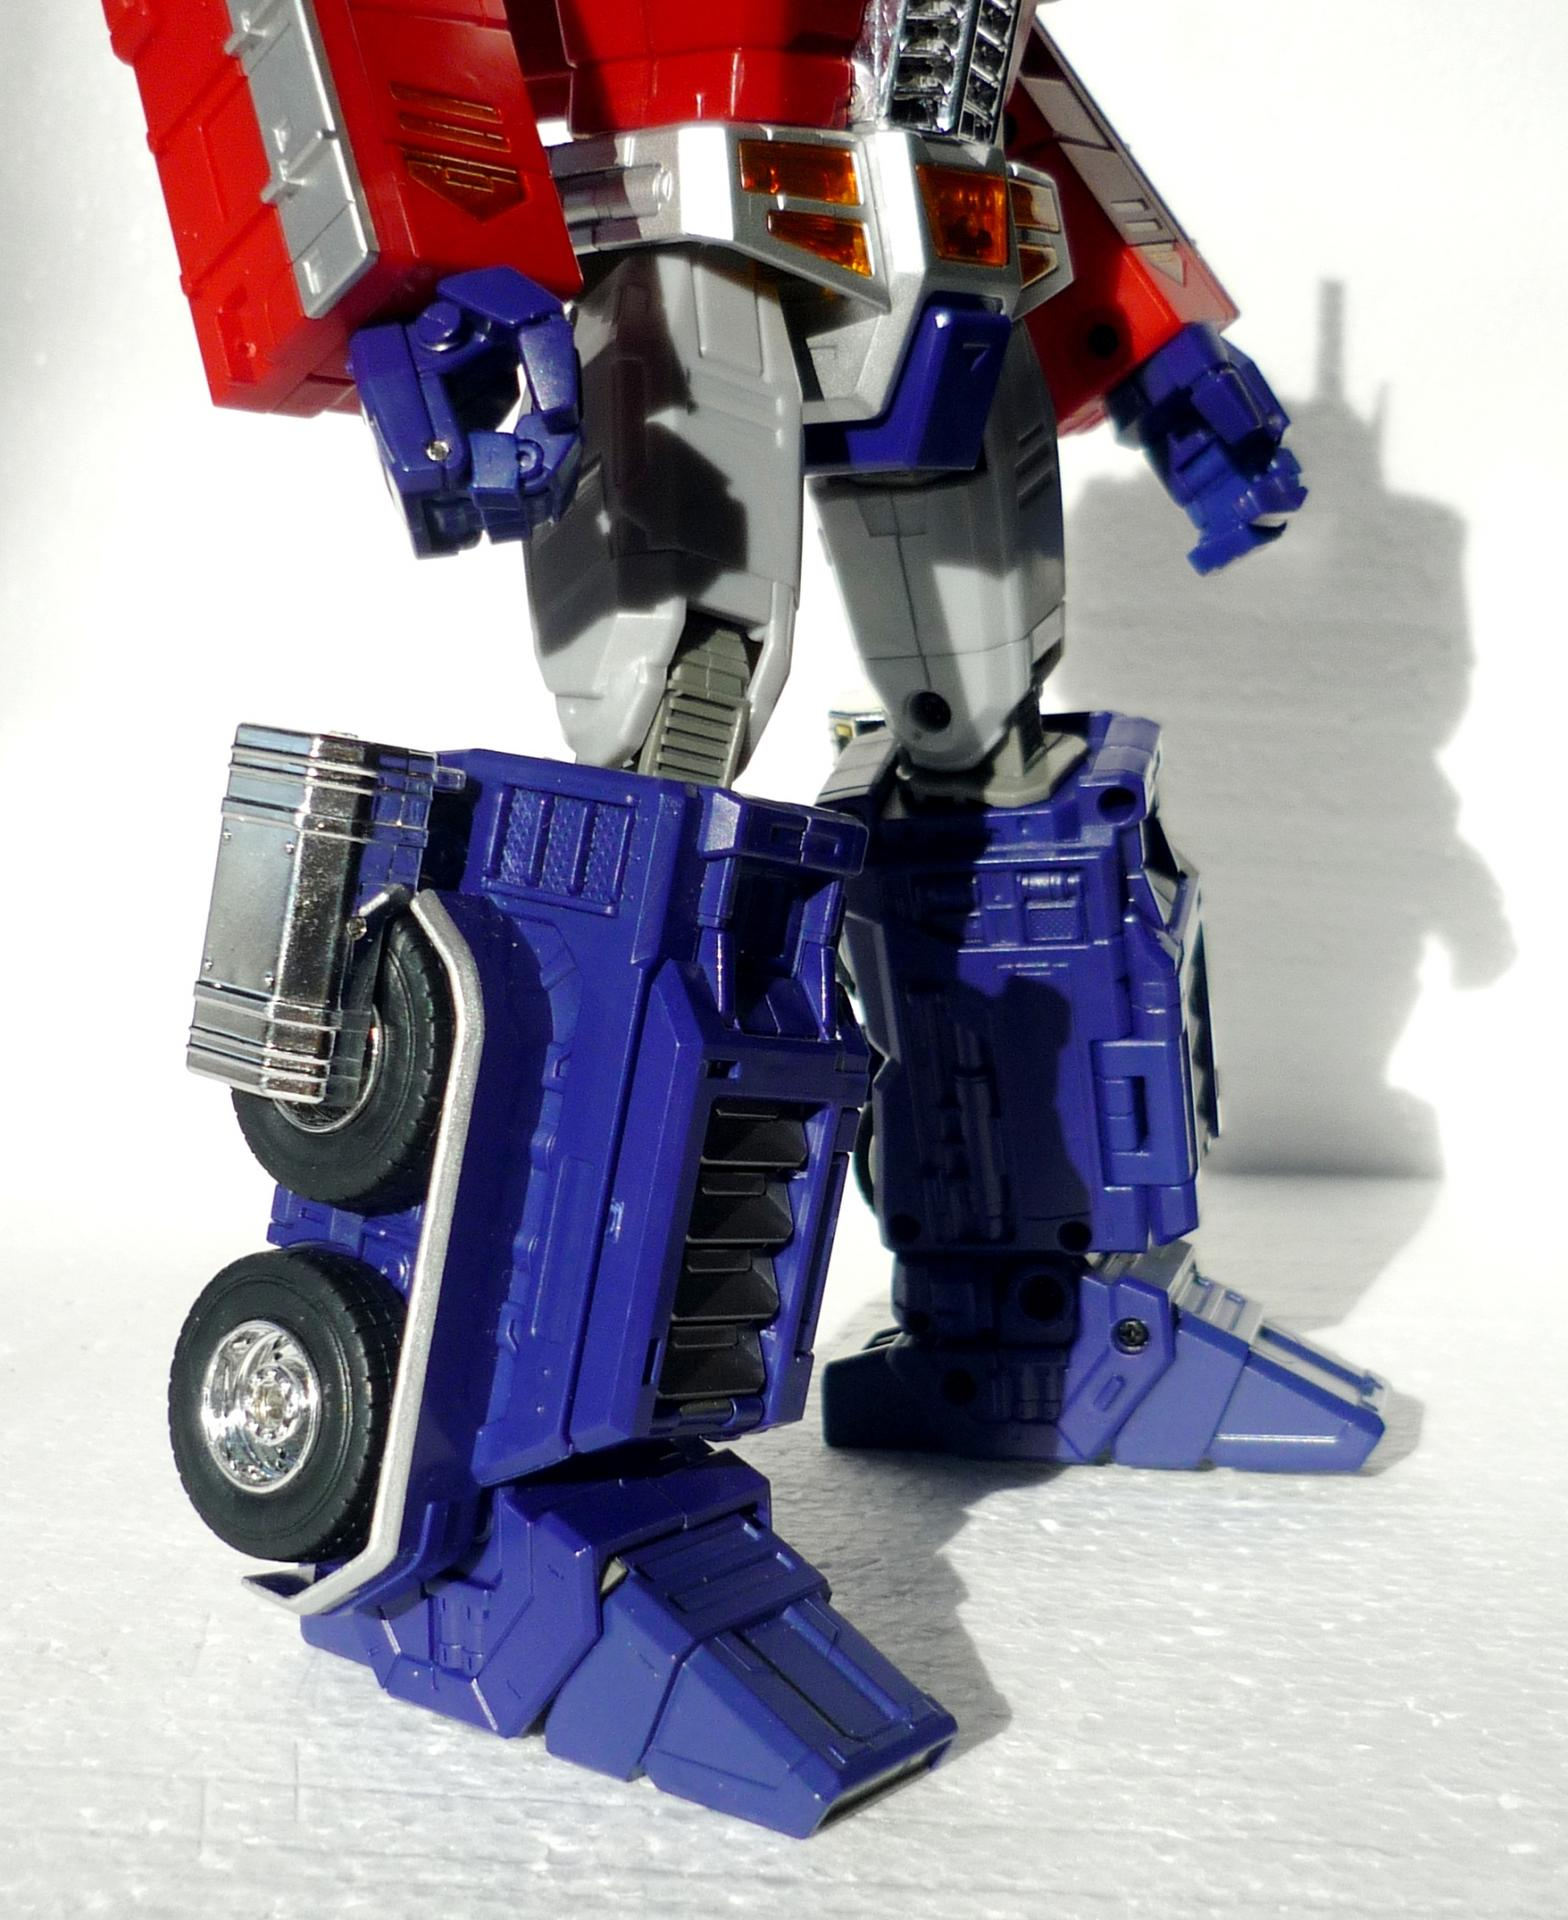 MP-10 leg panel removal and paint accents-legs1.jpg